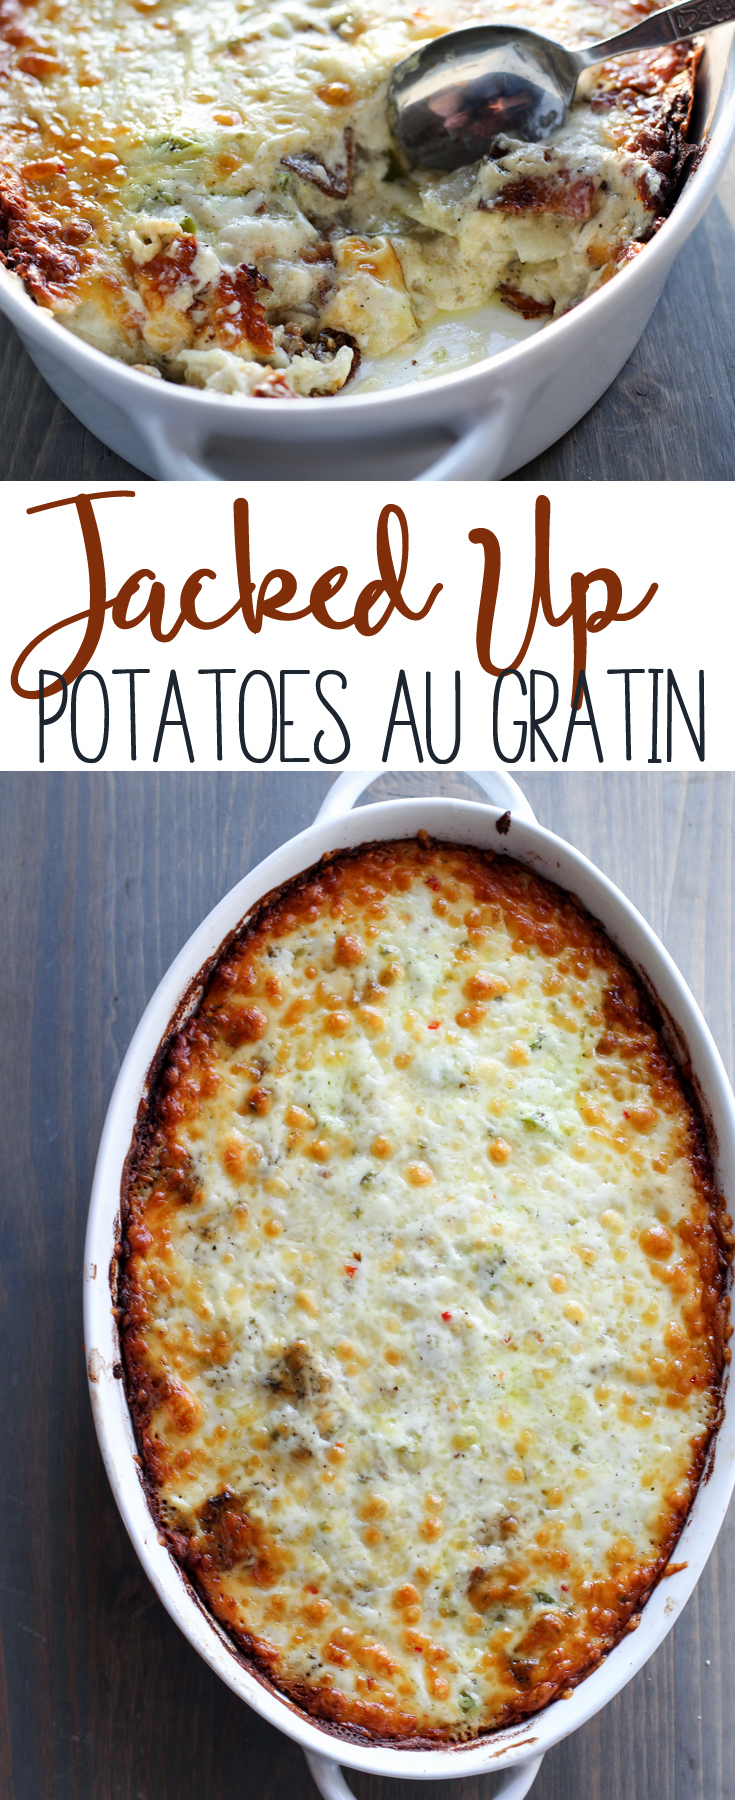 This Jacked Up Potatoes Au Gratin recipe might be the the best thing since...potatoes au gratin. Jack cheese, bacon, and peppers make this crave-worthy.